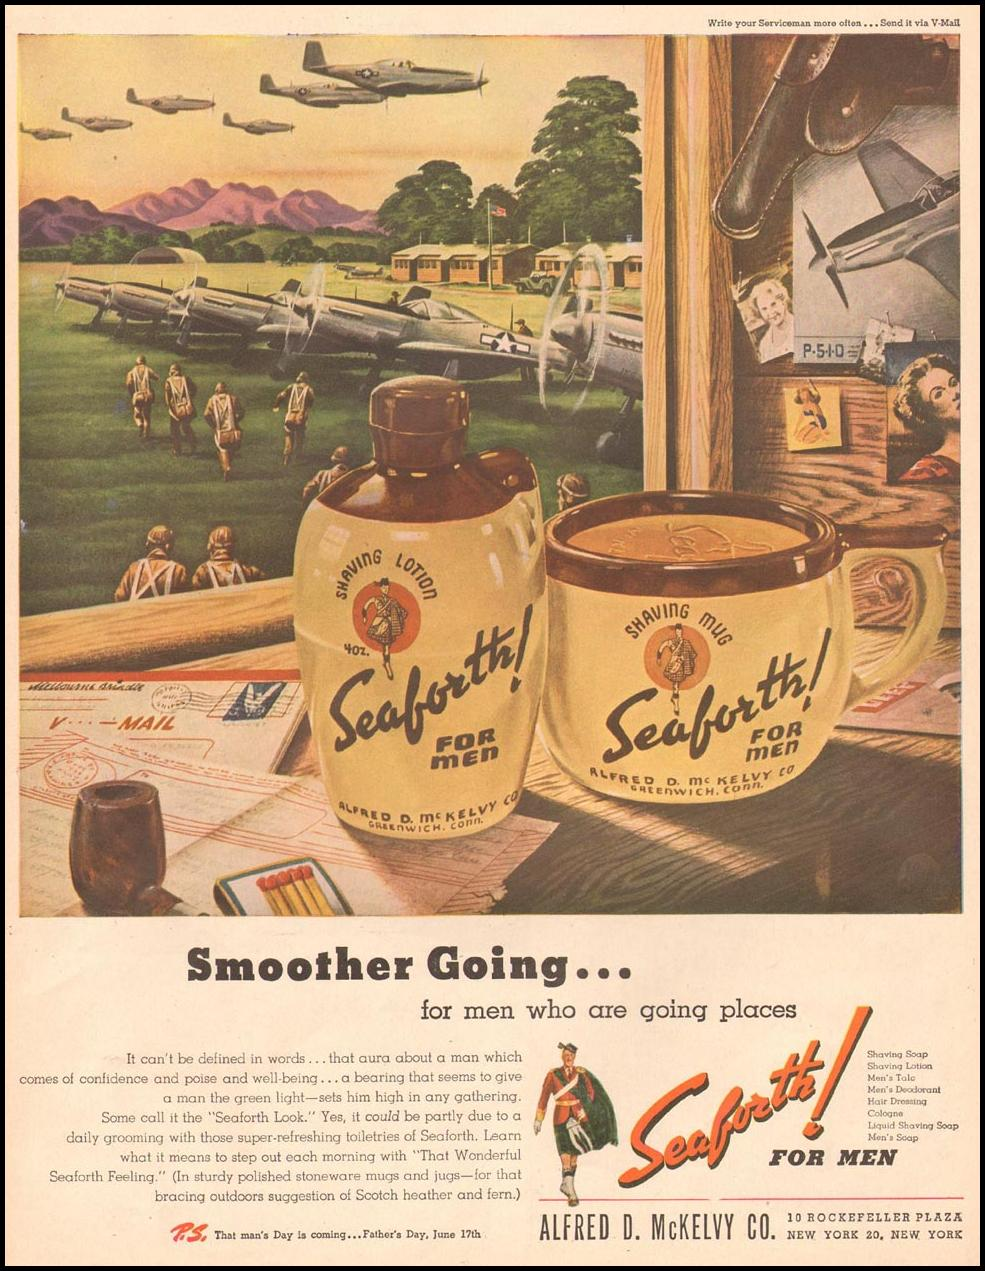 SEAFORTH! FOR MEN